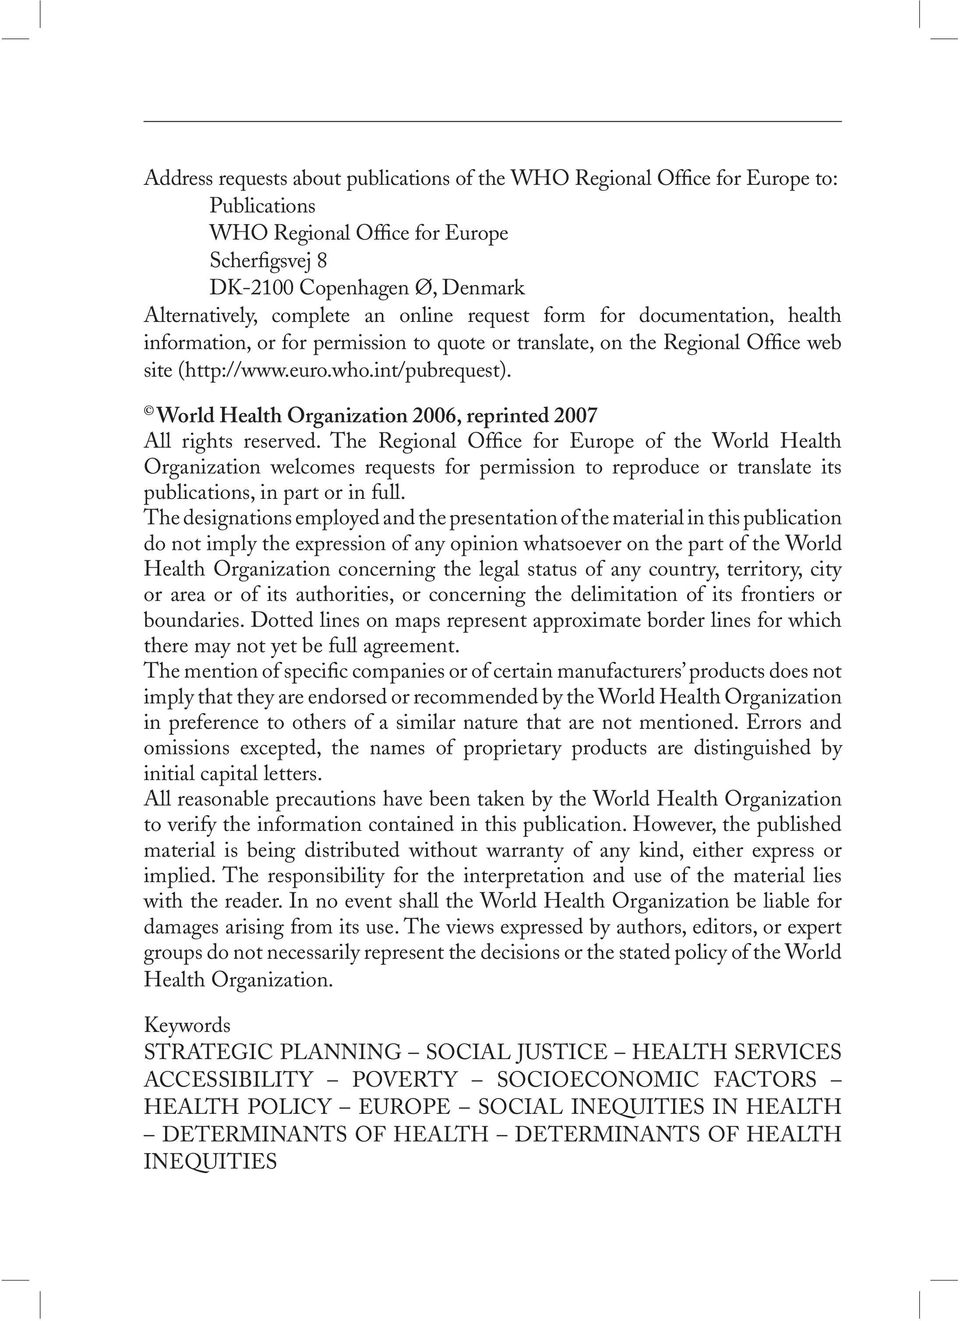 World Health Organization 2006, reprinted 2007 All rights reserved.